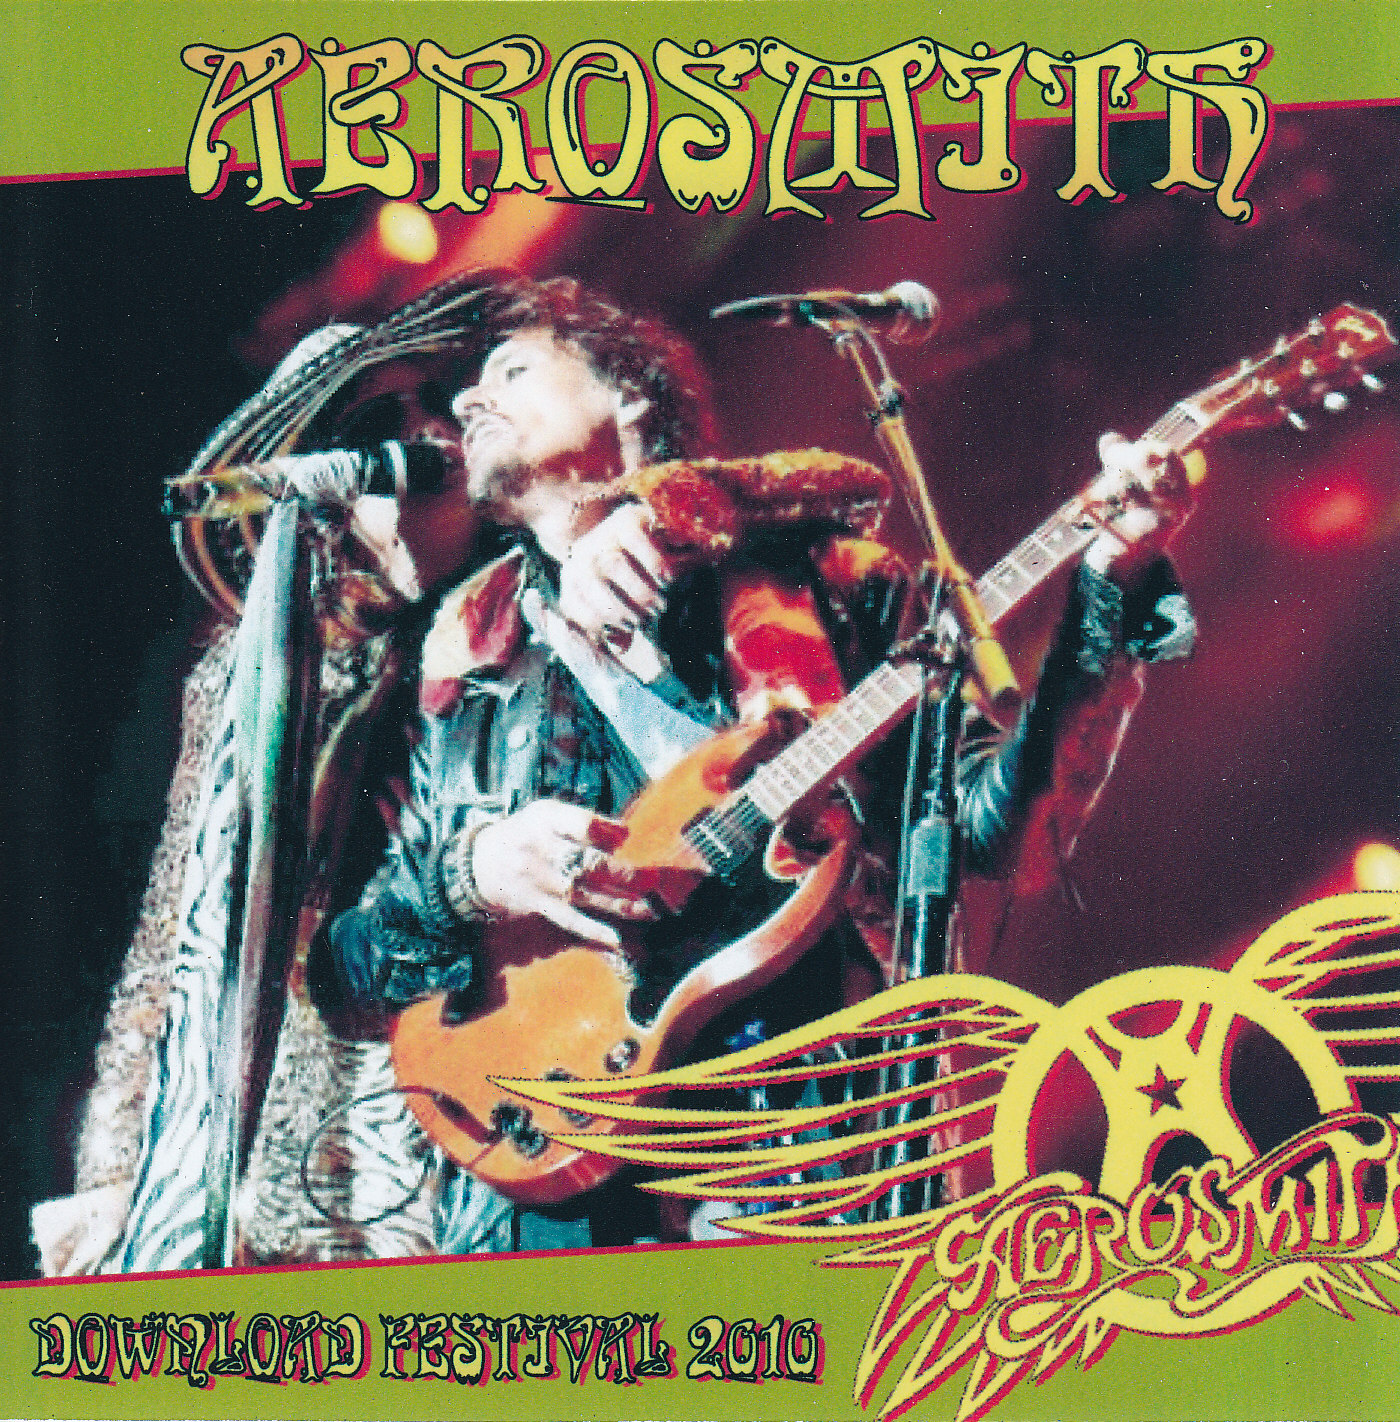 AEROSMITH BOOTLEGS COVER ARTS: DOWNLOAD FESTIVAL 2010 (Leicestershire )